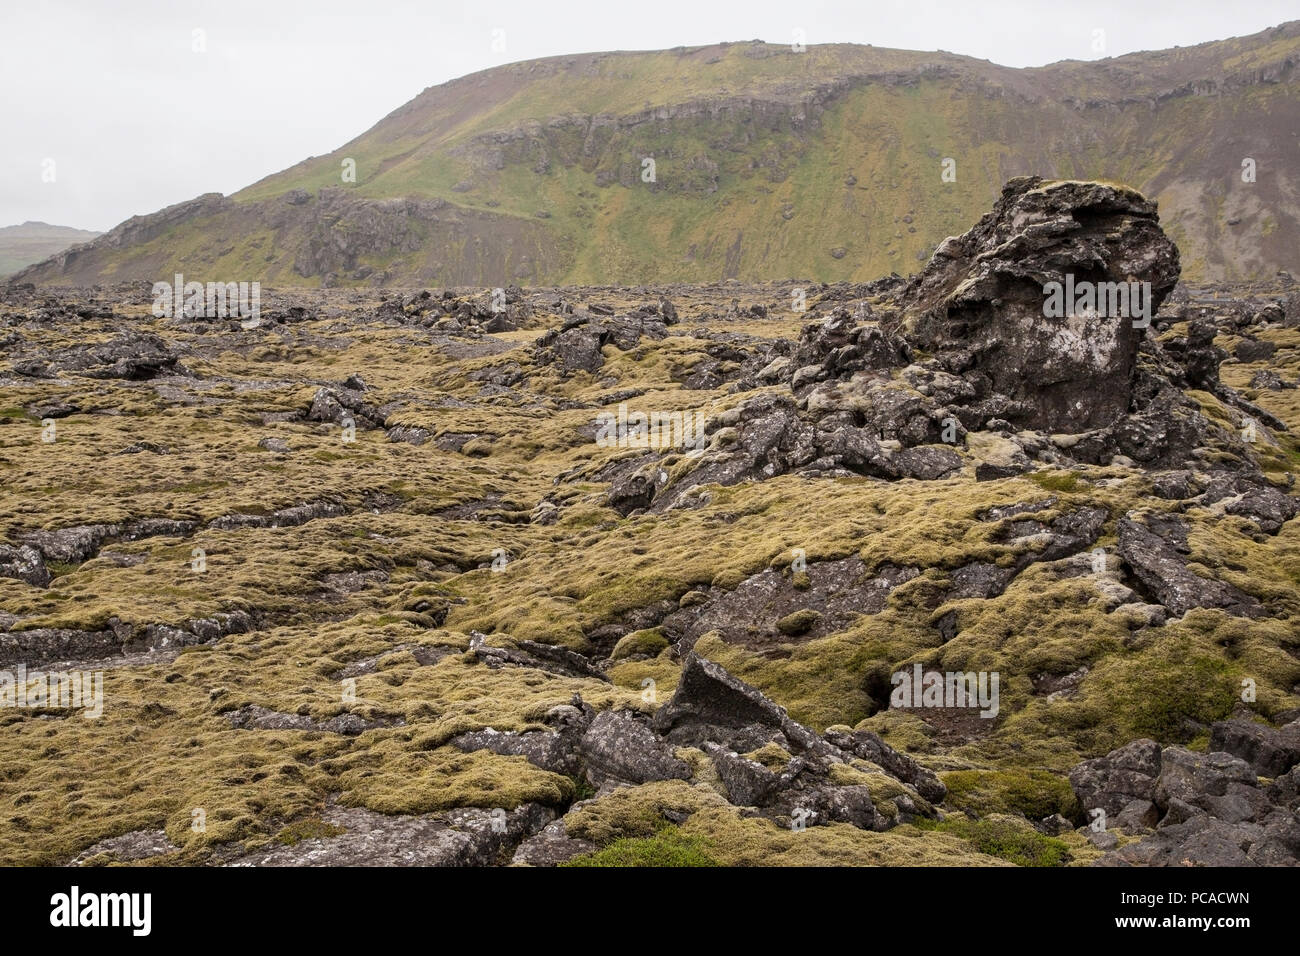 vegetation growing in volcanic lunar landscape, Iceland - Stock Image